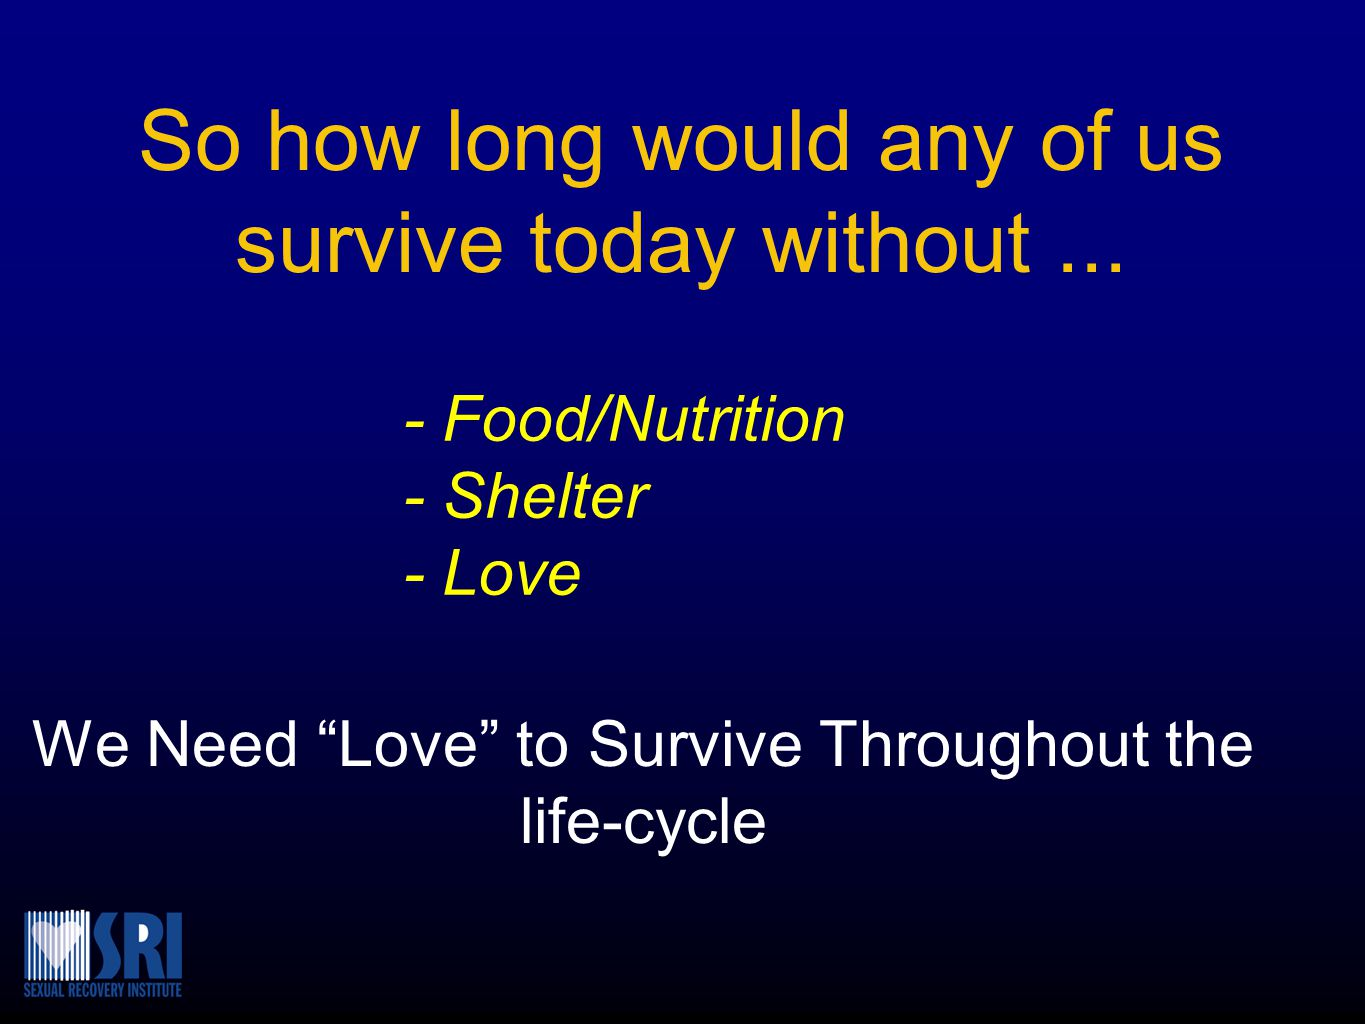 So how long would any of us survive today without...